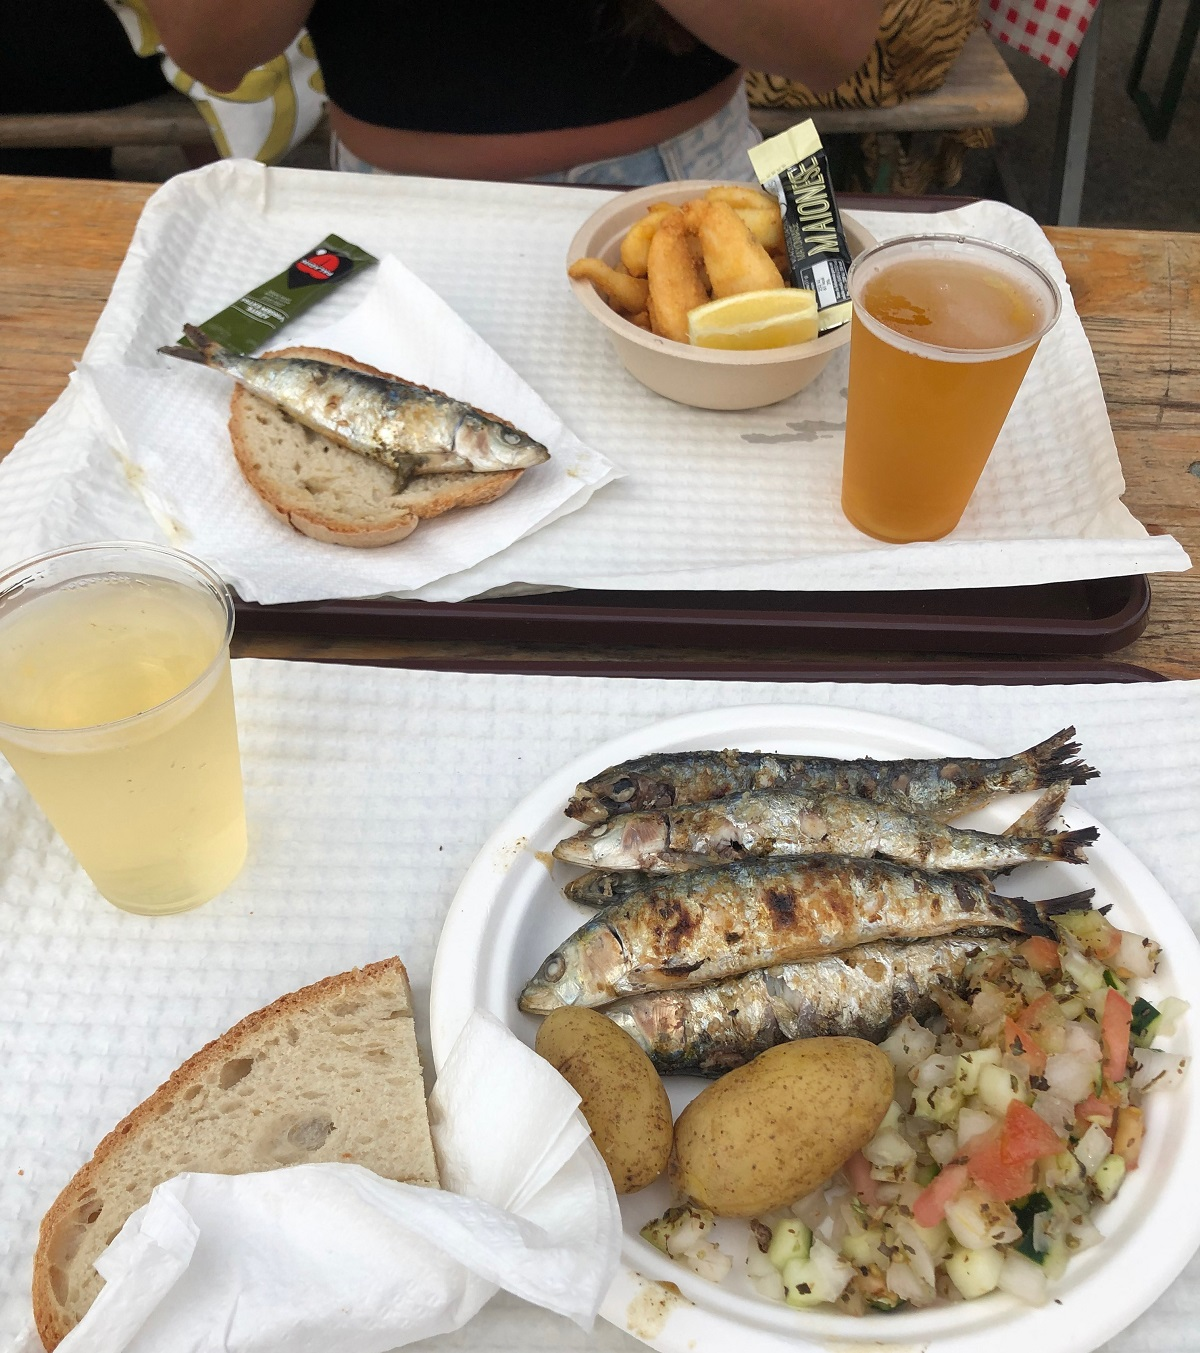 Eating sardines from a street market in Portugal isn't something I would've pictured myself trying but I'm much more experimental these days!